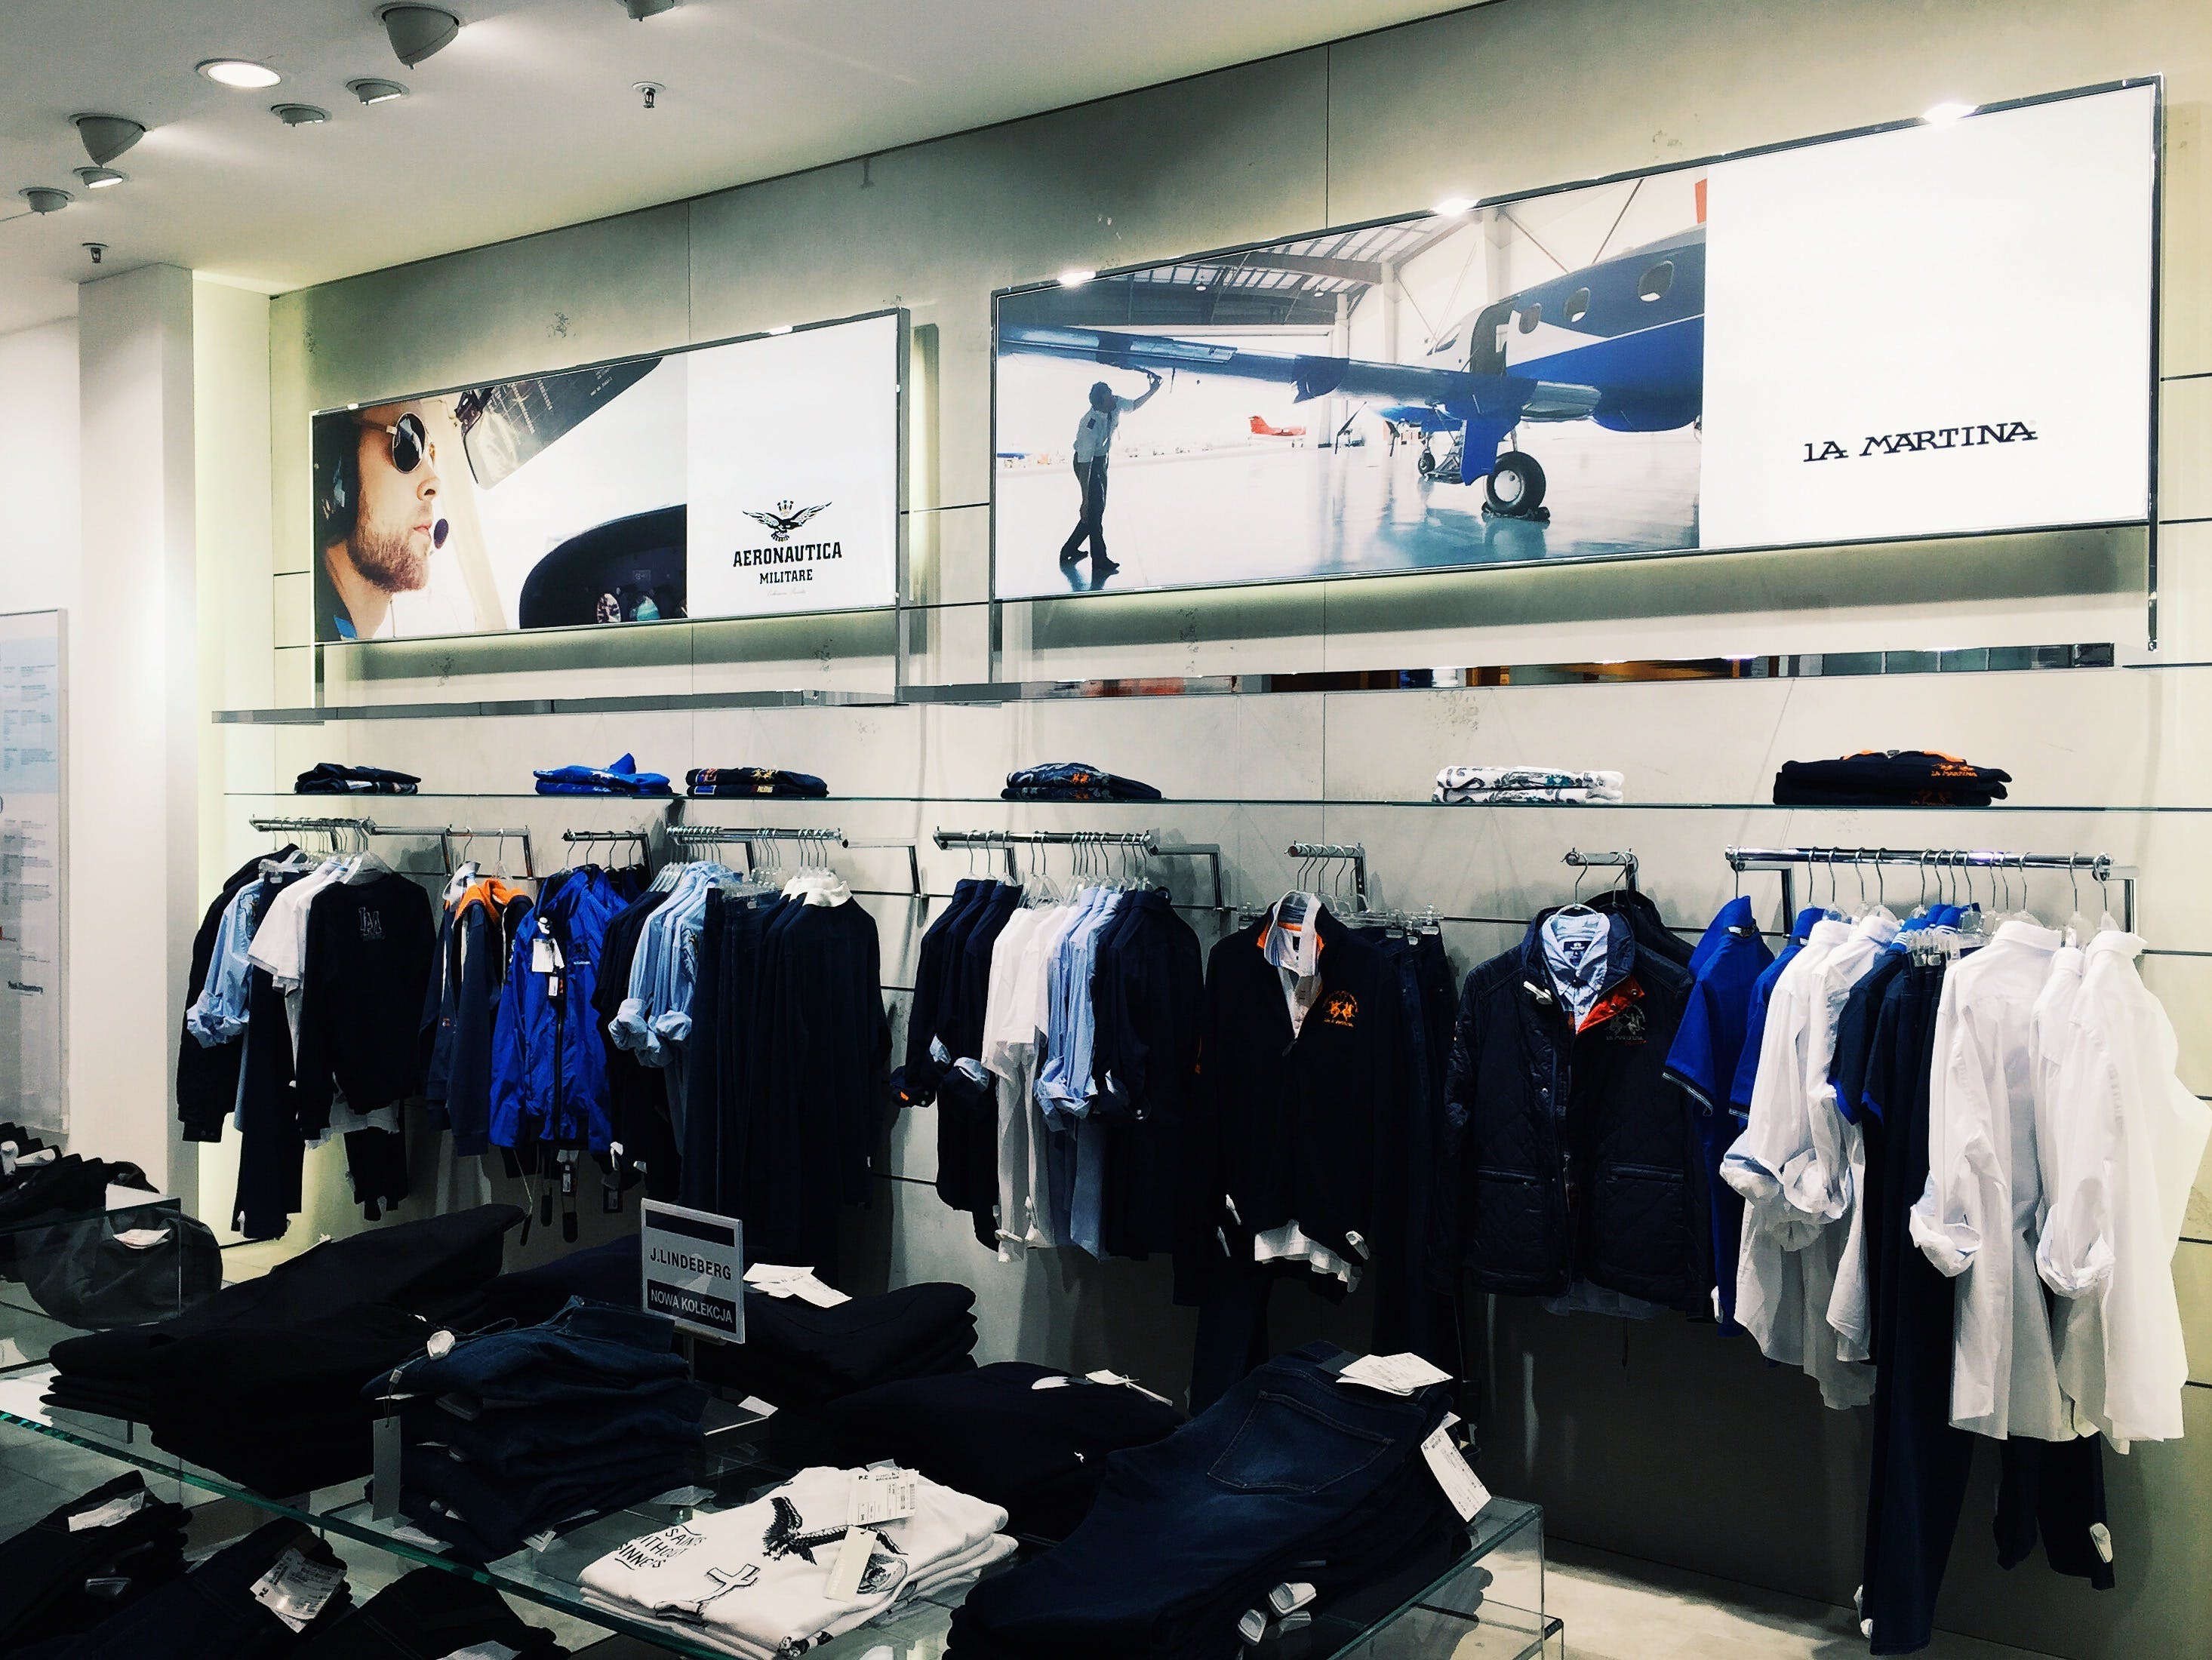 Clothes Hanging in Store